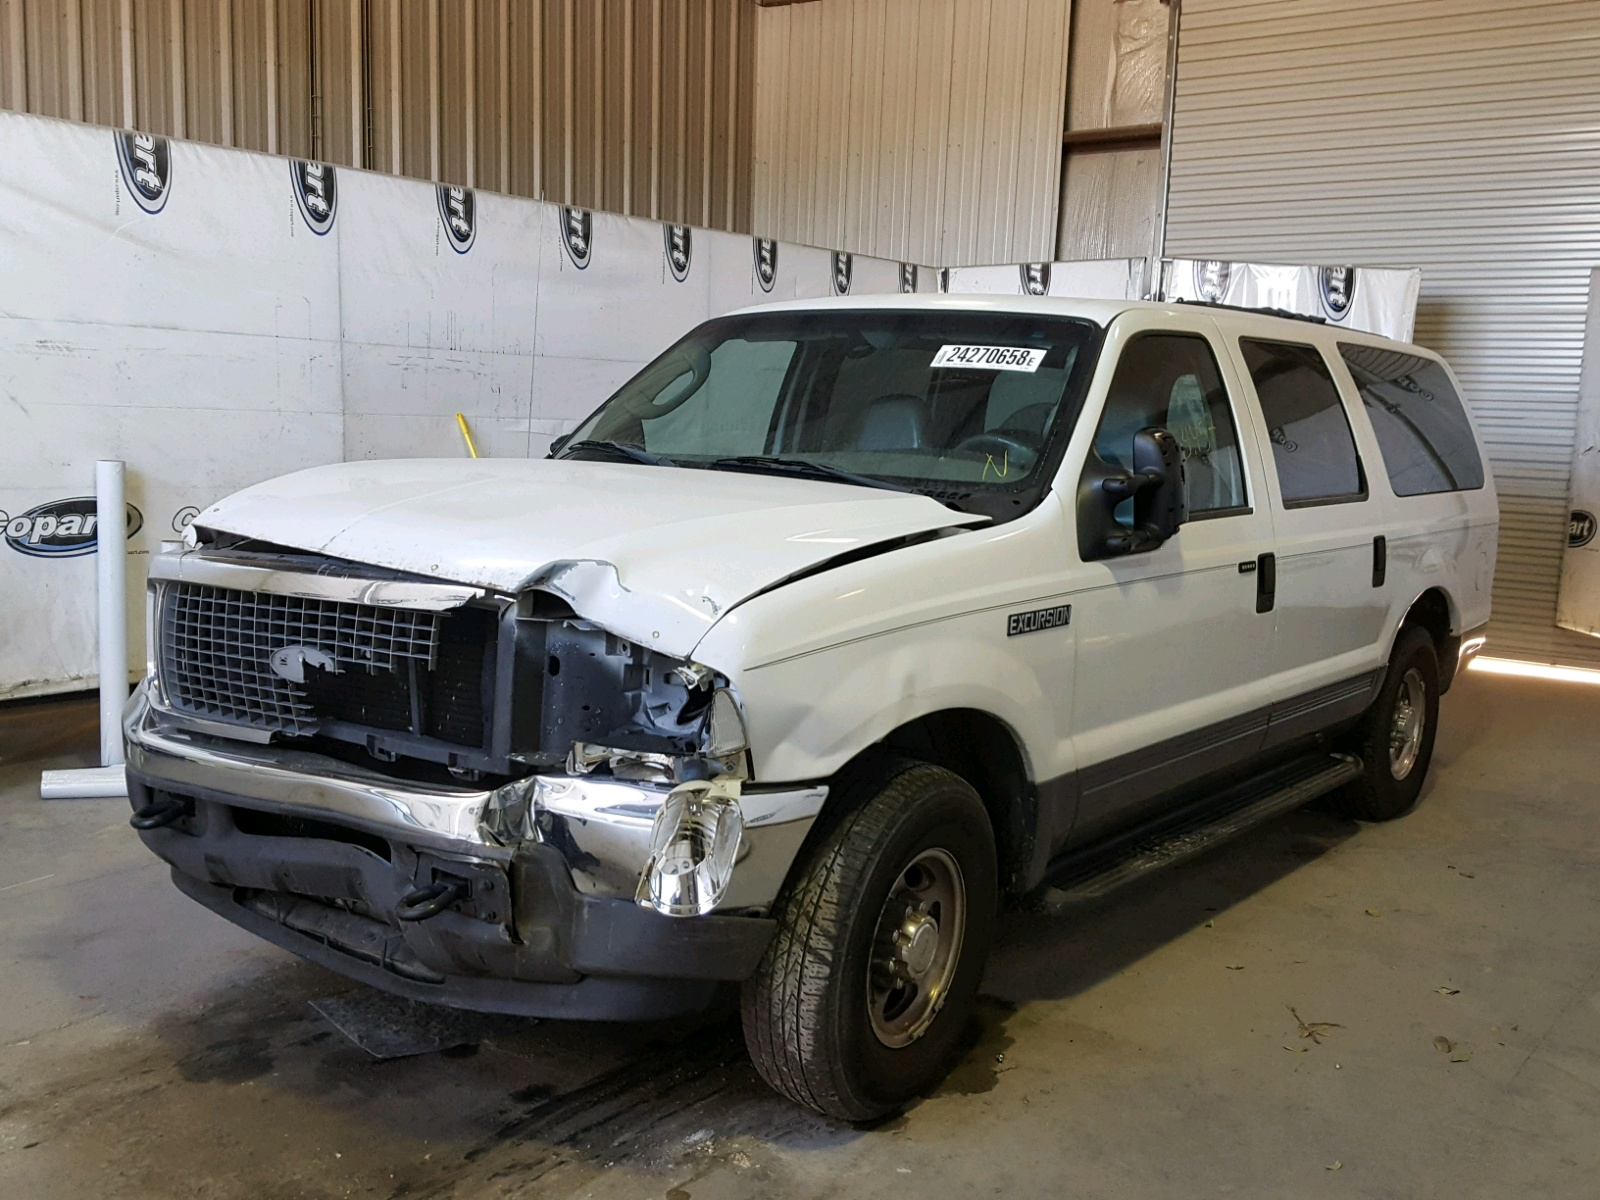 Auto Auction Ended on VIN 1FMNU40L04EC 2004 FORD EXCURSION in